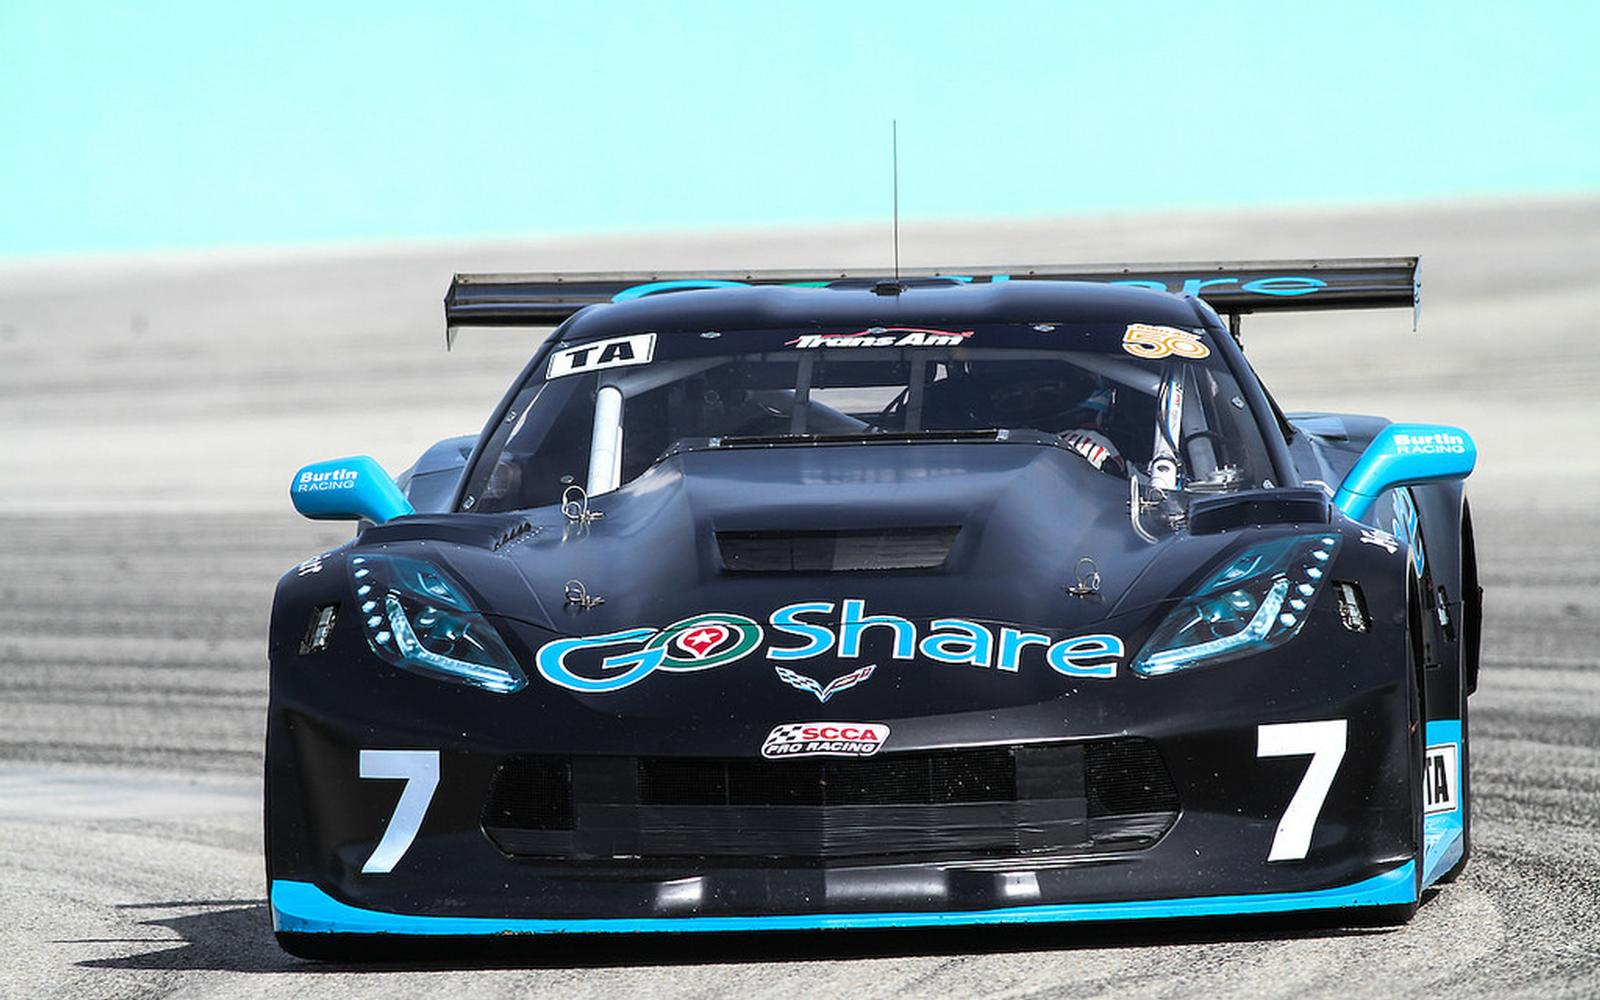 Competitive Drive at Homestead-Miami for Burtin Racing